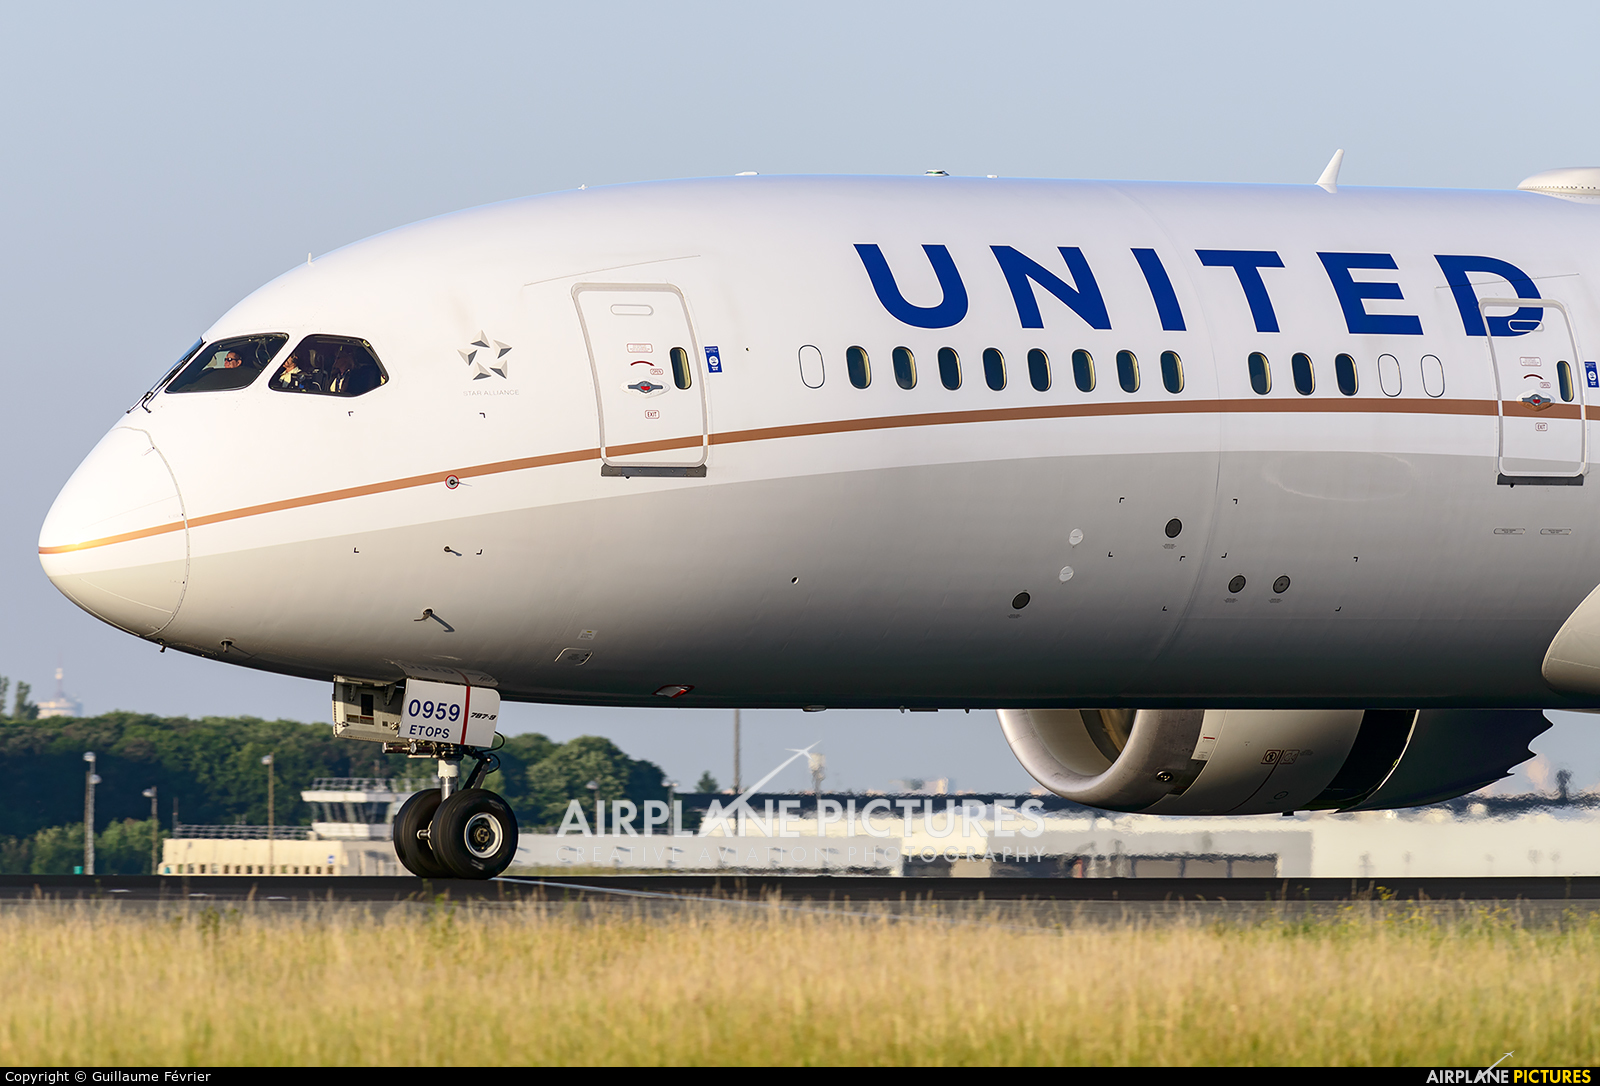 United Airlines N27959 aircraft at Paris - Charles de Gaulle